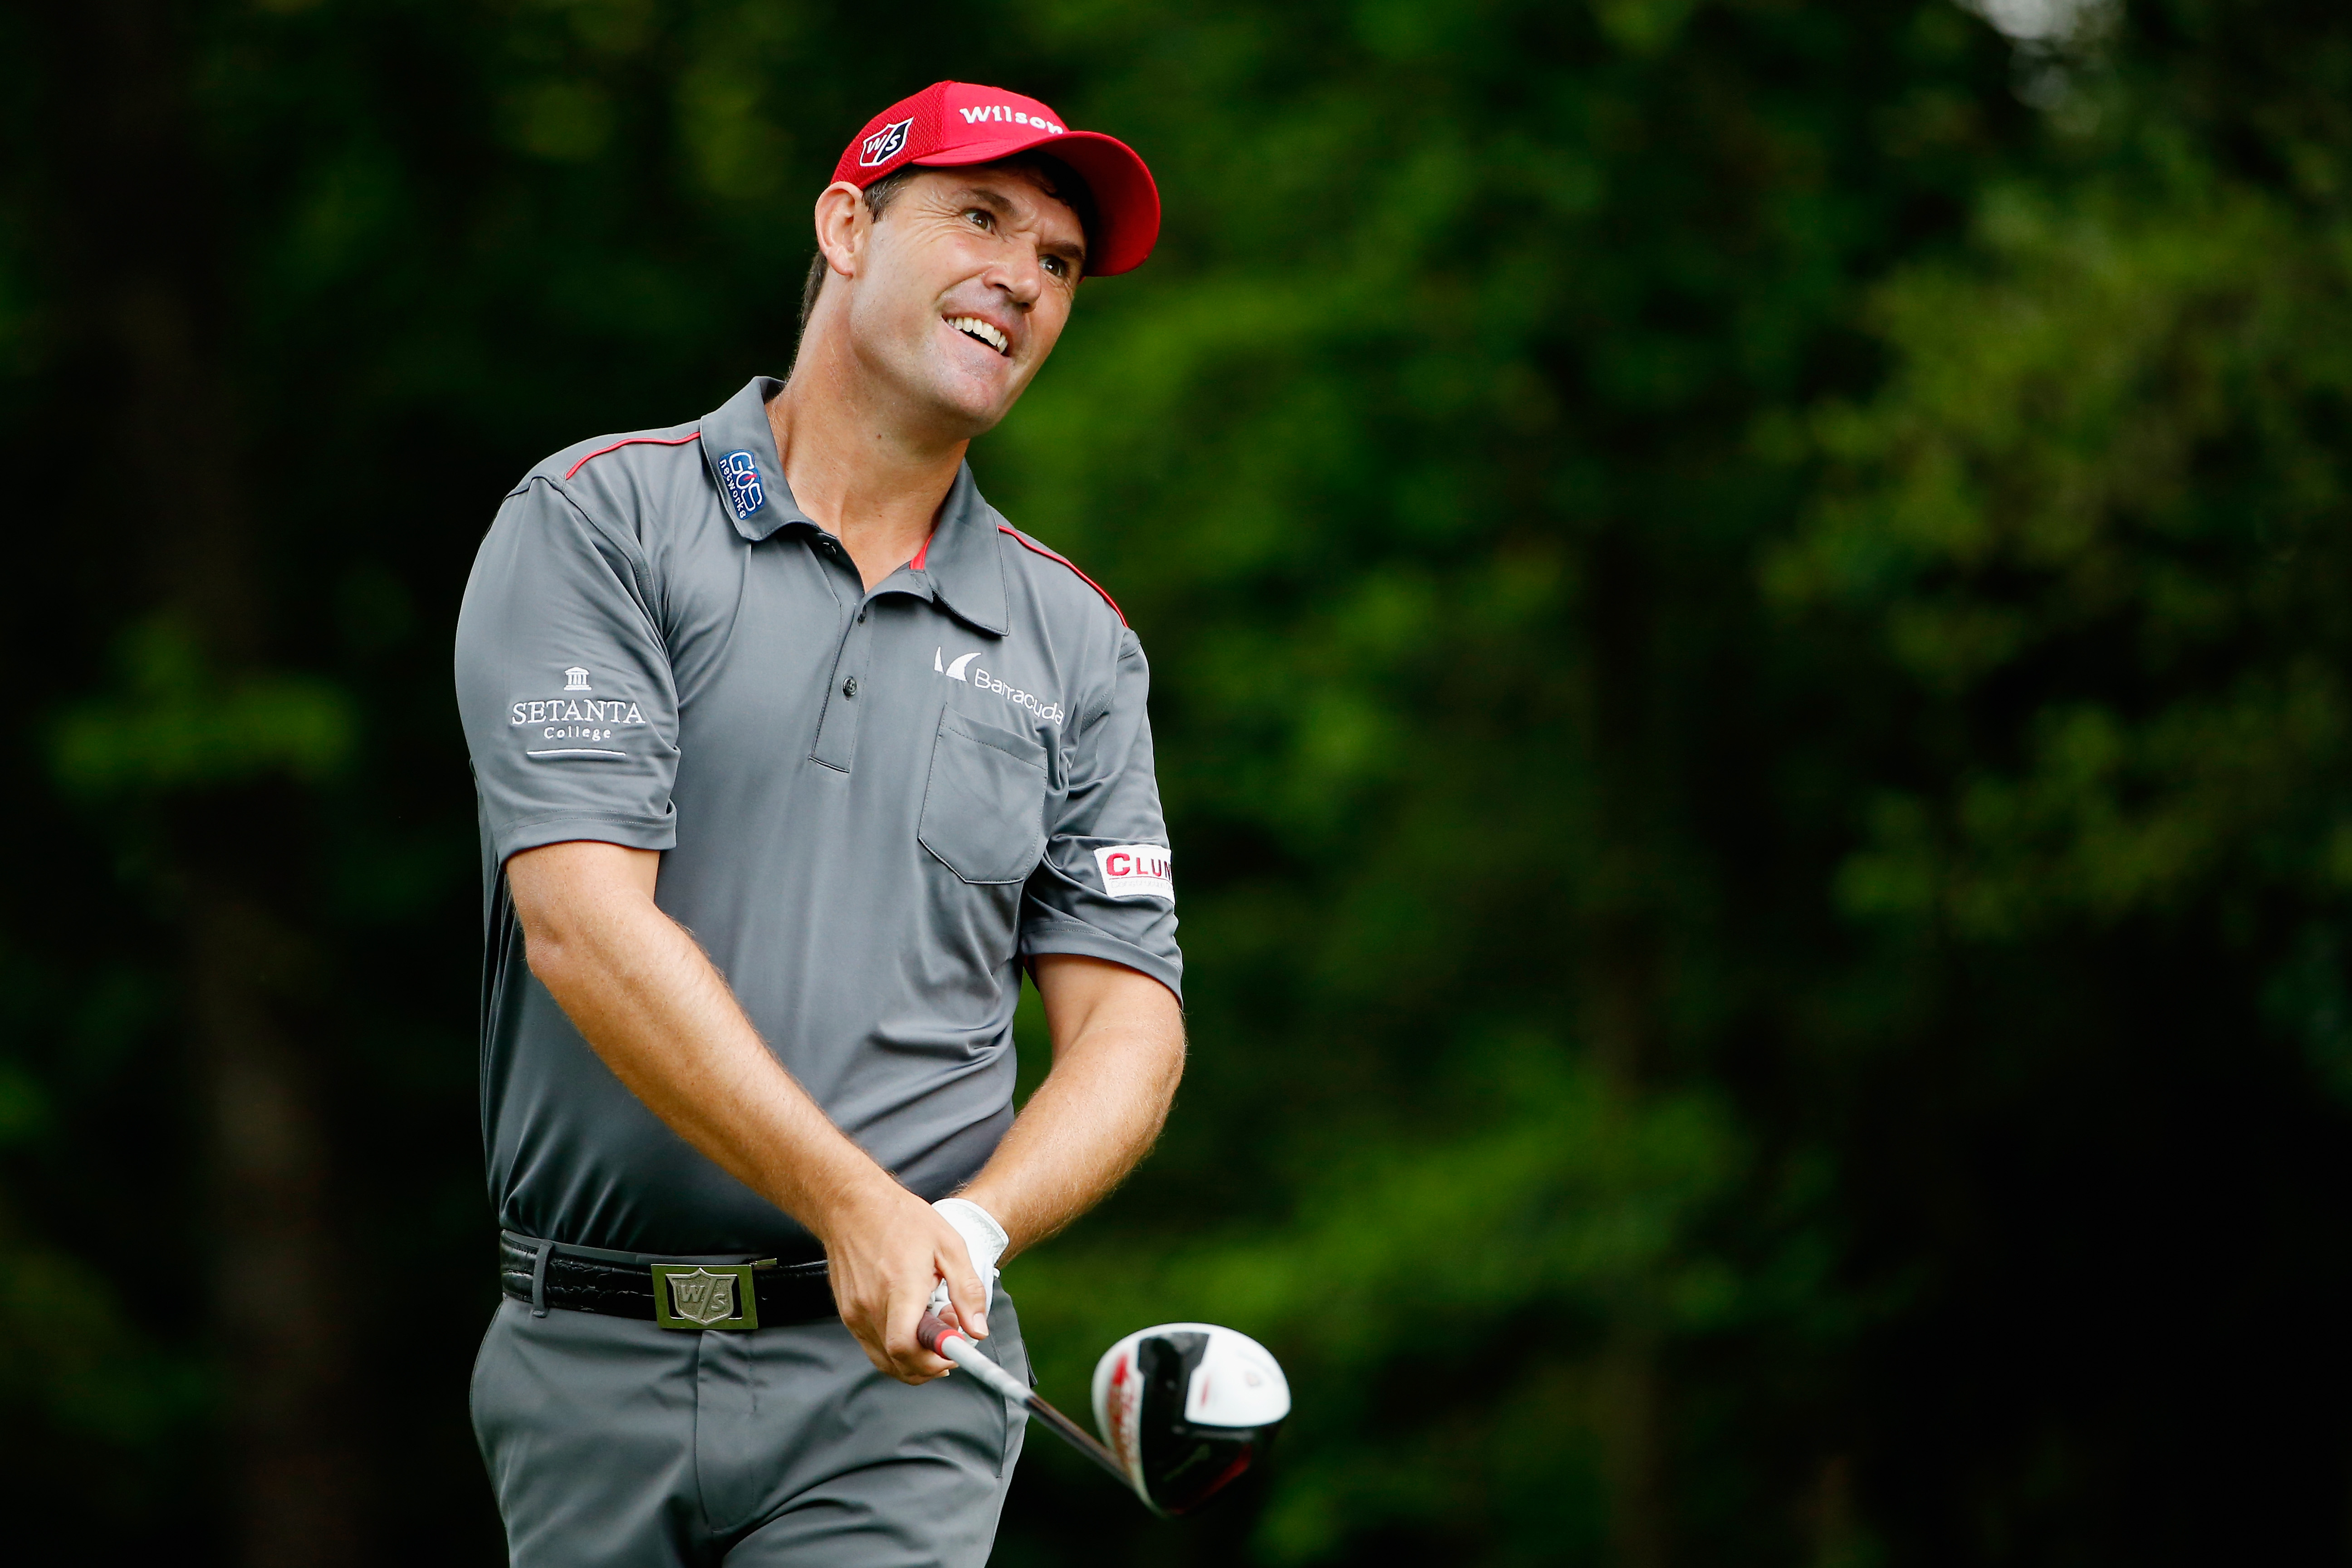 Harrington won the Honda Classic in March (Photo: Getty Images)